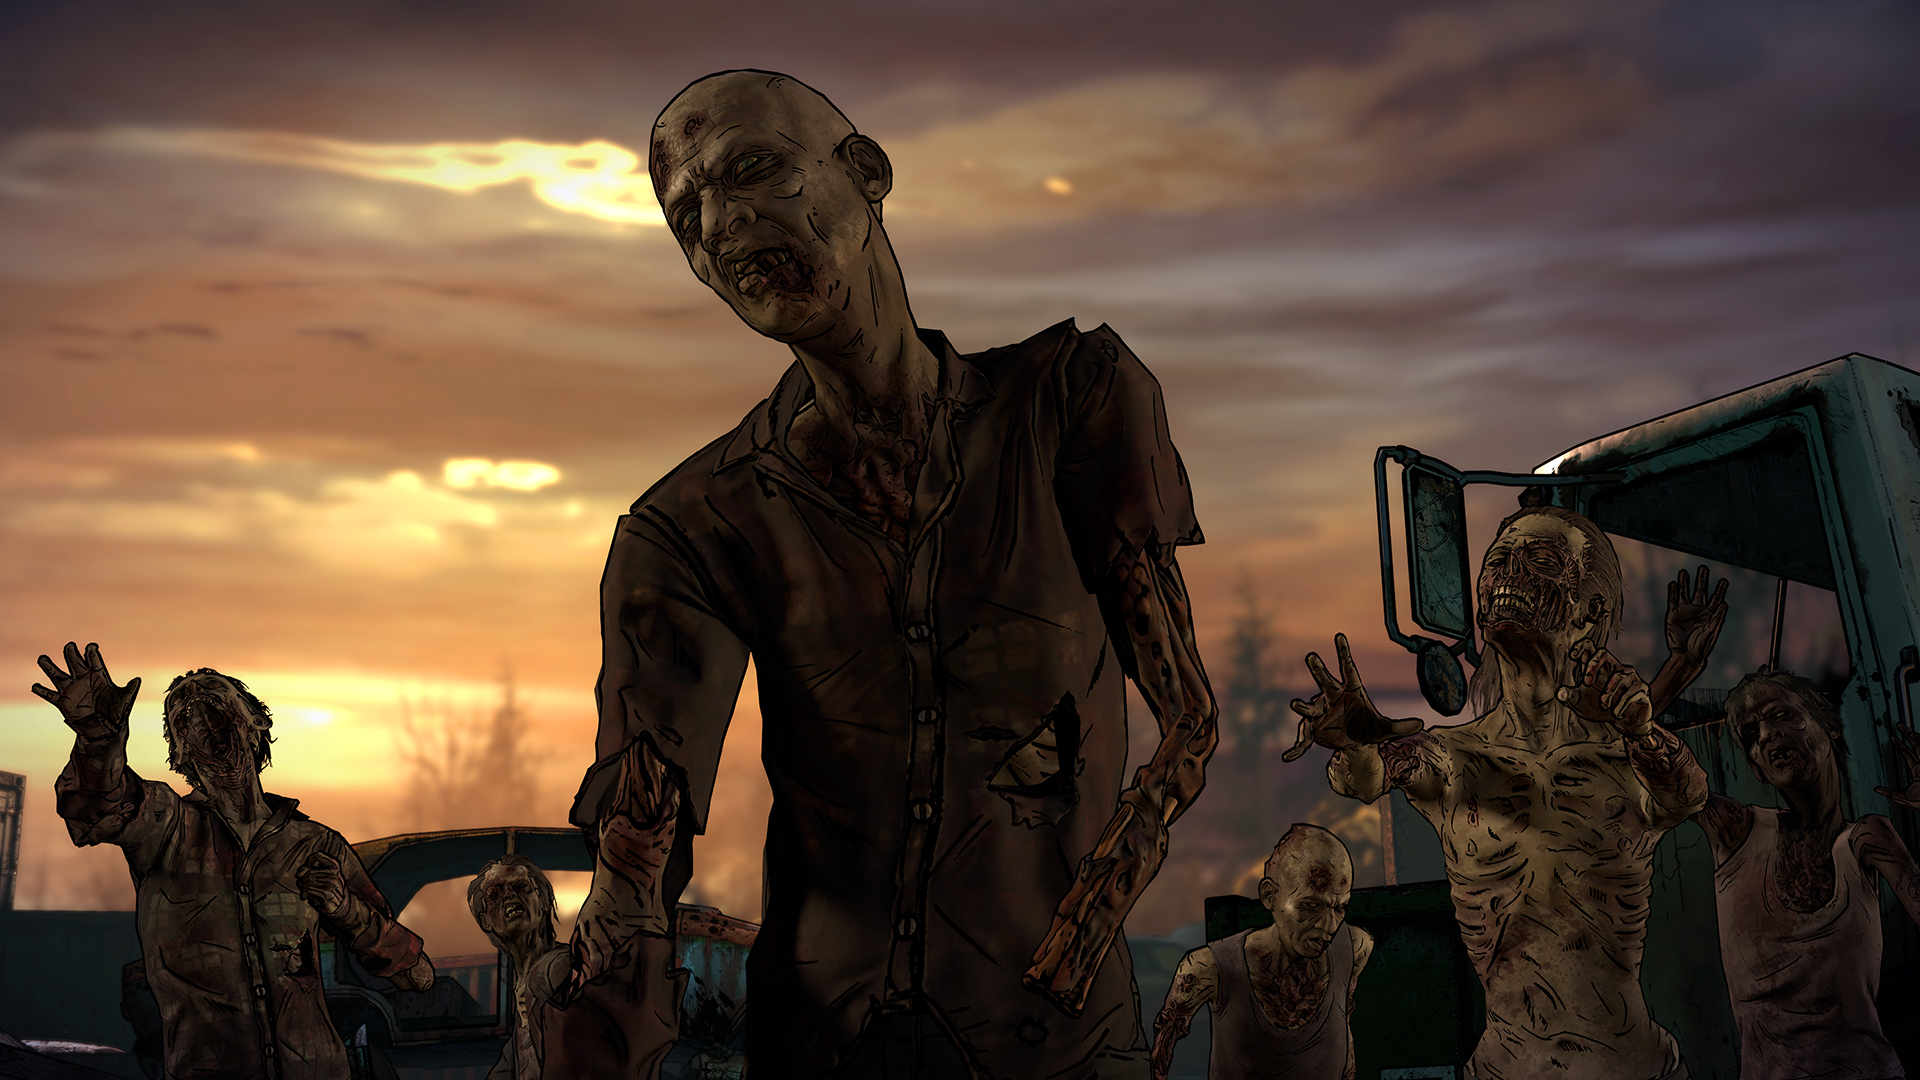 the-walking-dead-the-telltale-series-a-new-frontier-episode-two-ties-that-bind-part-ii-review-screenshot-3